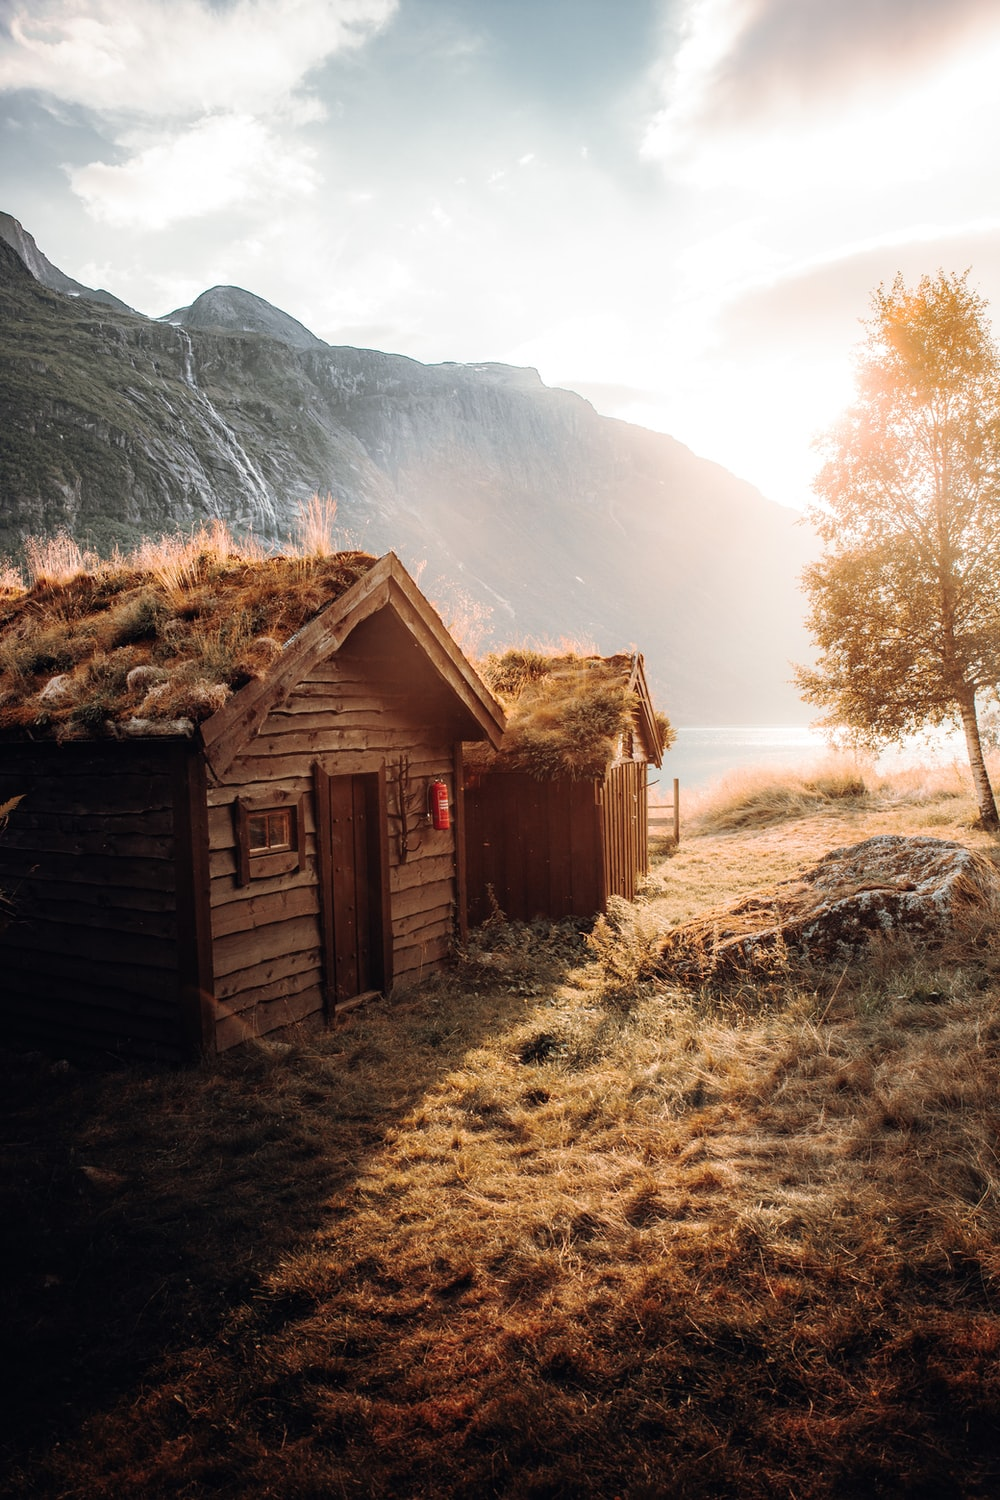 brown wooden house near brown trees and mountain during daytime